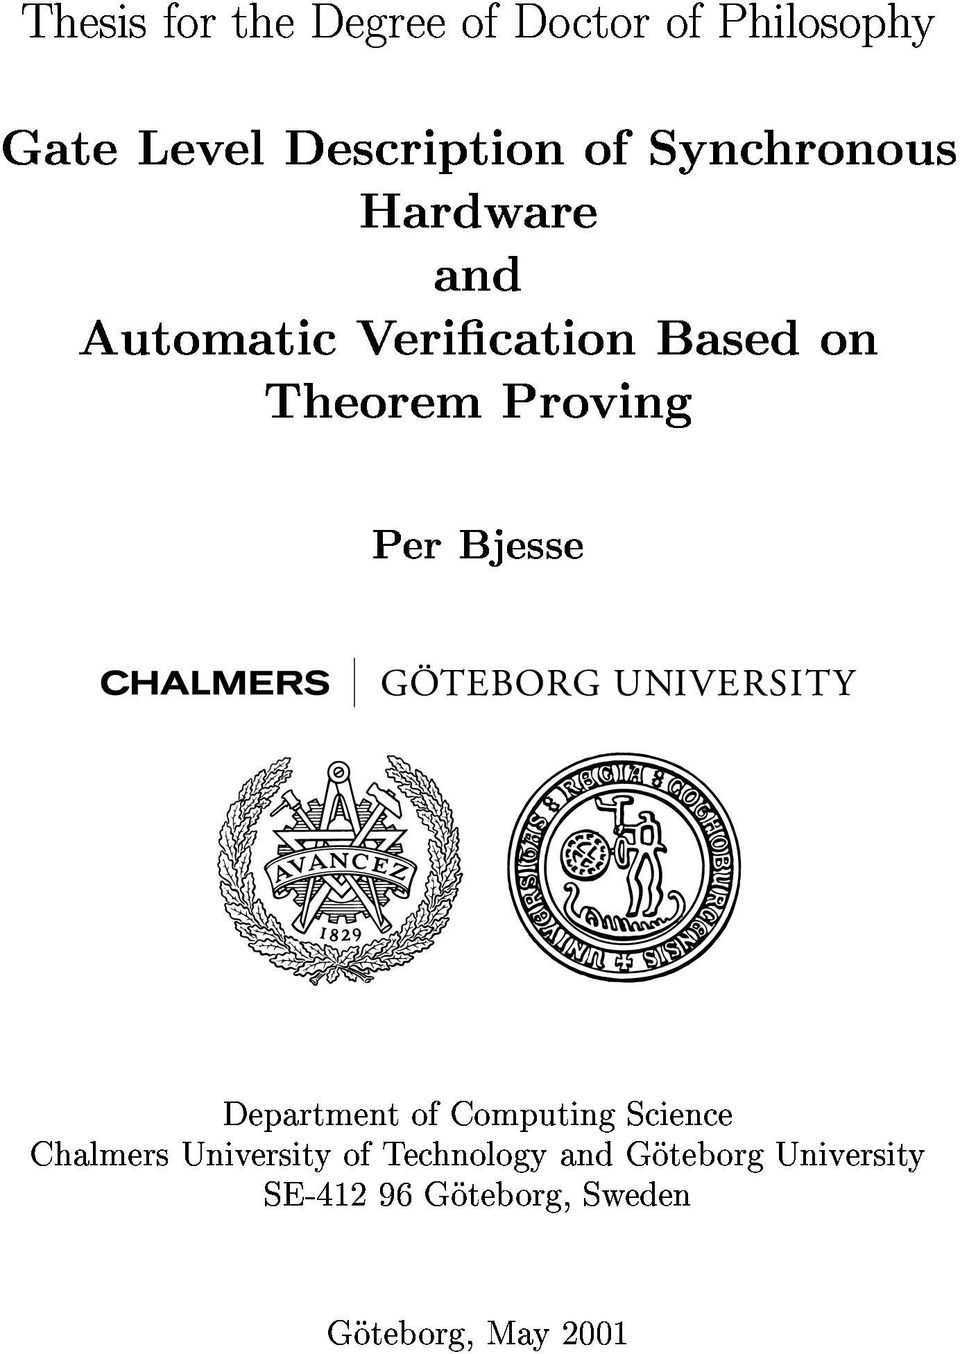 AutomaticVericationBasedon Hardware TheoremProving and PerBjesse